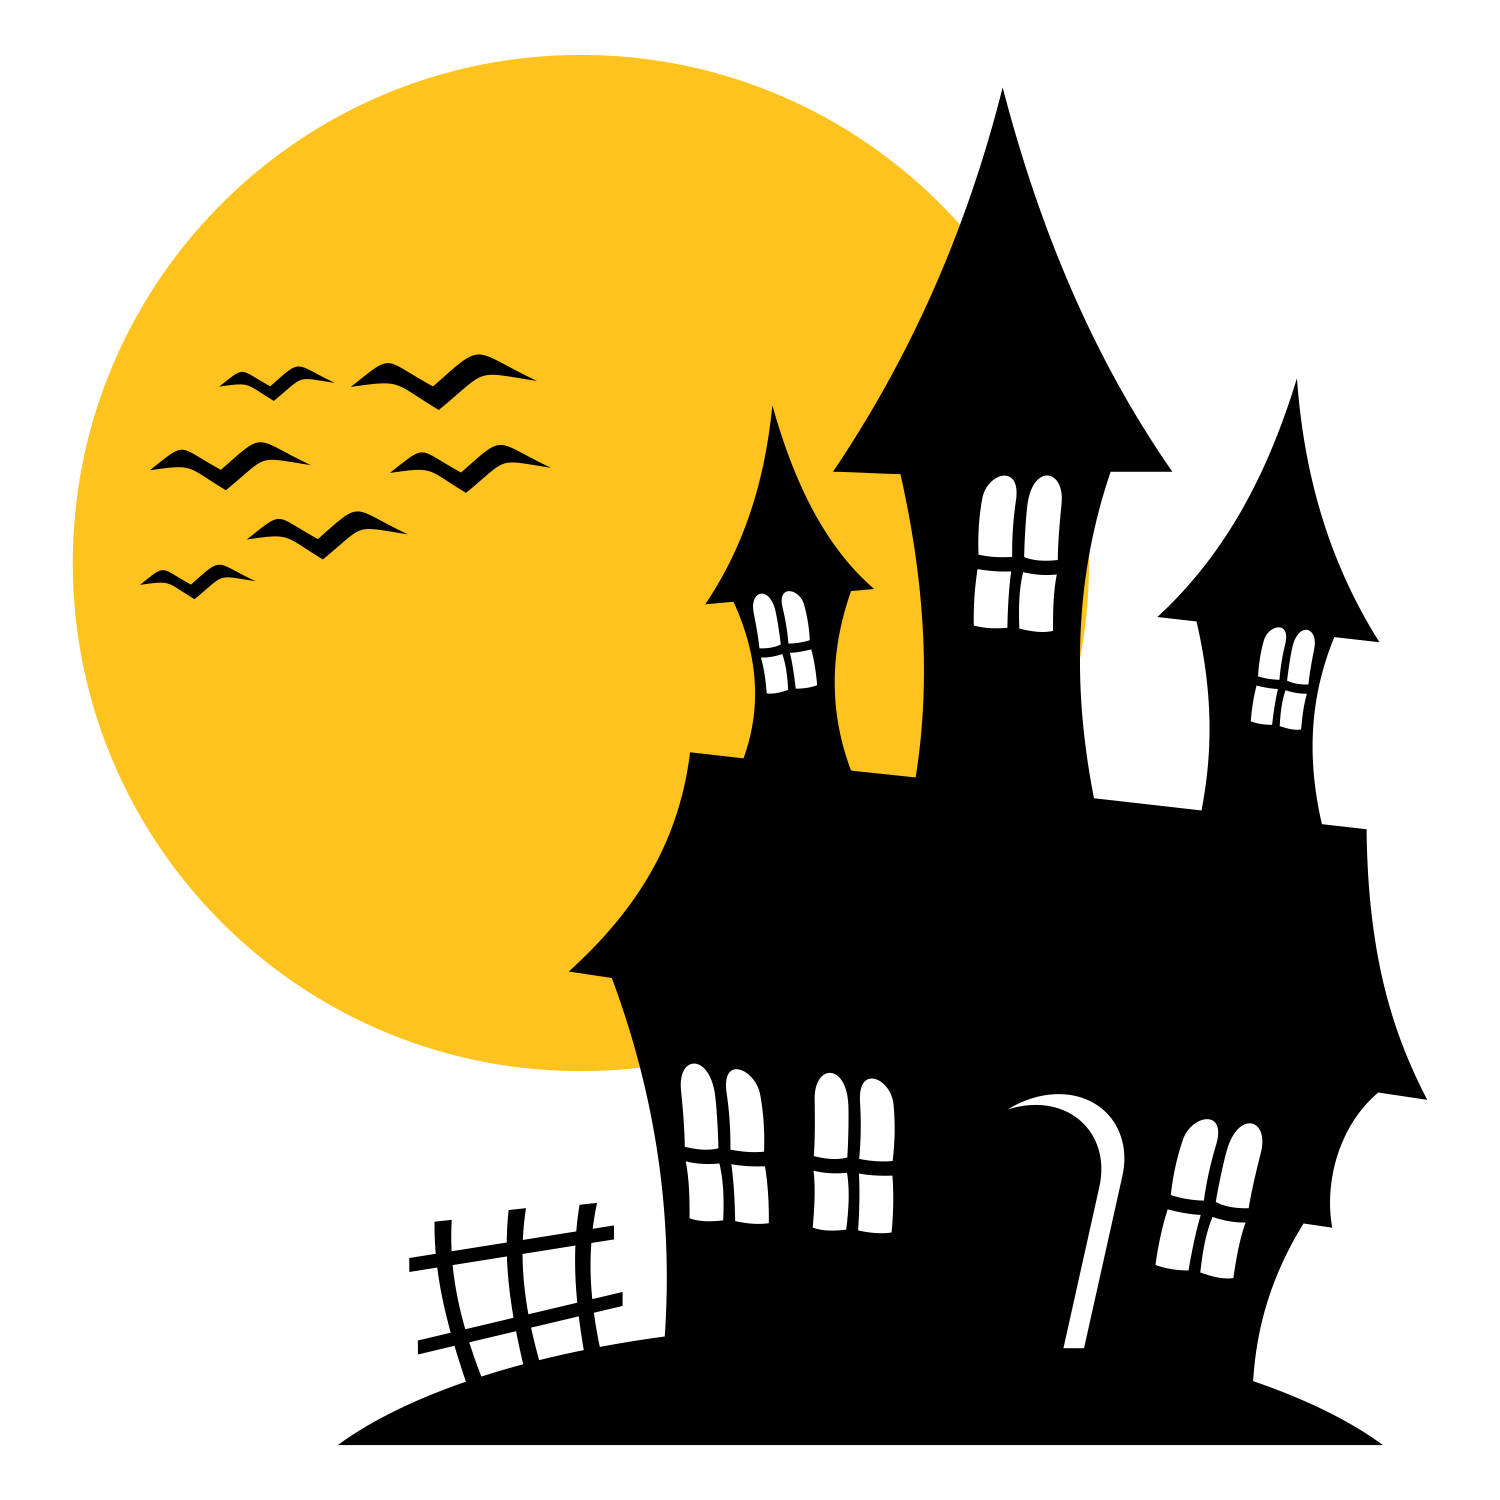 Haunted house silhouette.